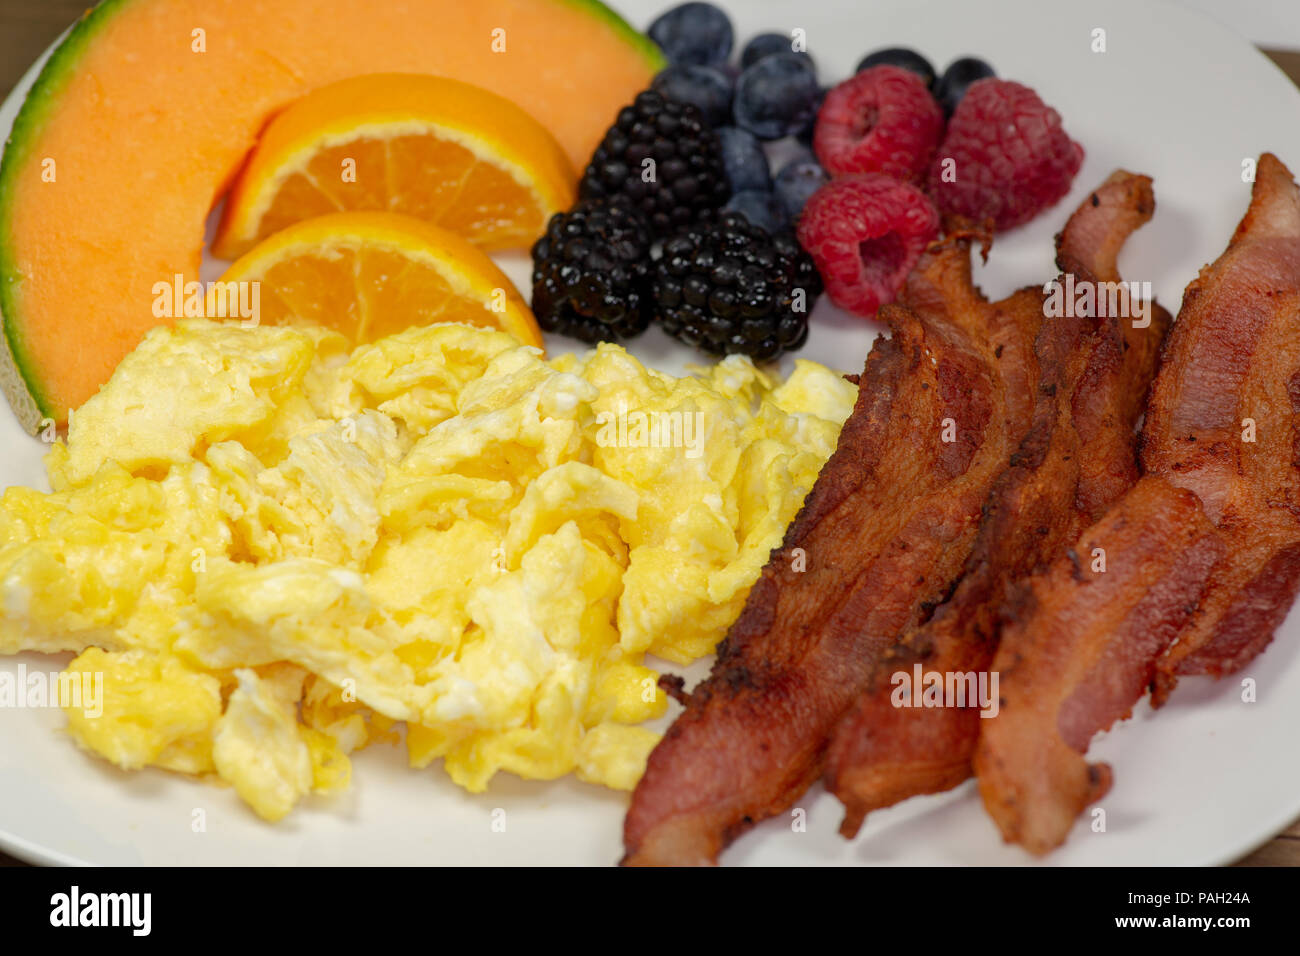 Breakfast plate of bacon, cantaloup slice, orange slices, blackberries, raspberries and blueberries on the kitchen table waiting to be eaten - Stock Image